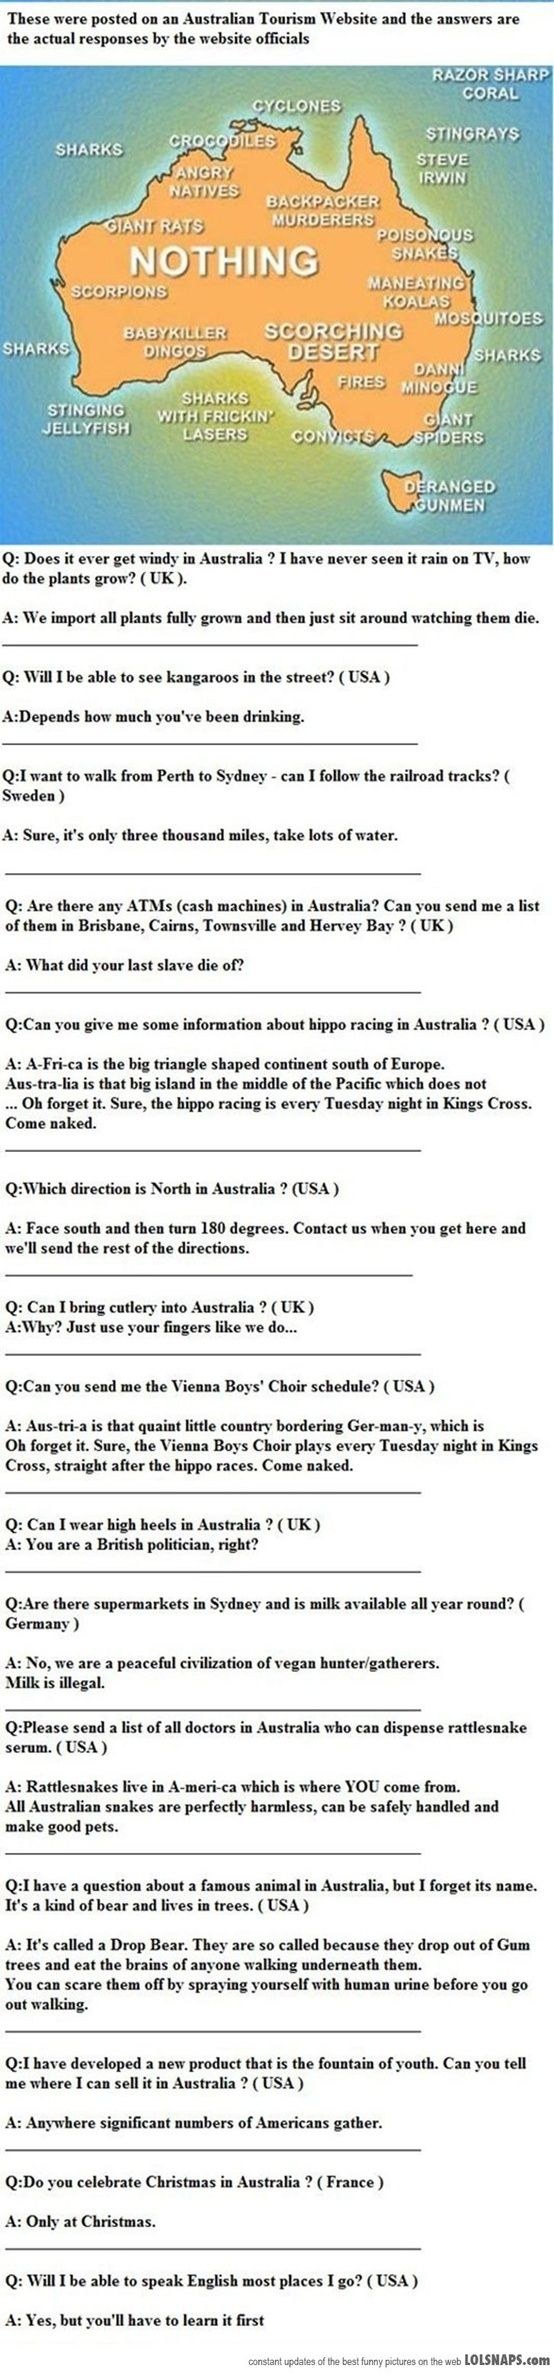 People of the Australian Tourism website… I salute you for this feat of sarcastic greatness.